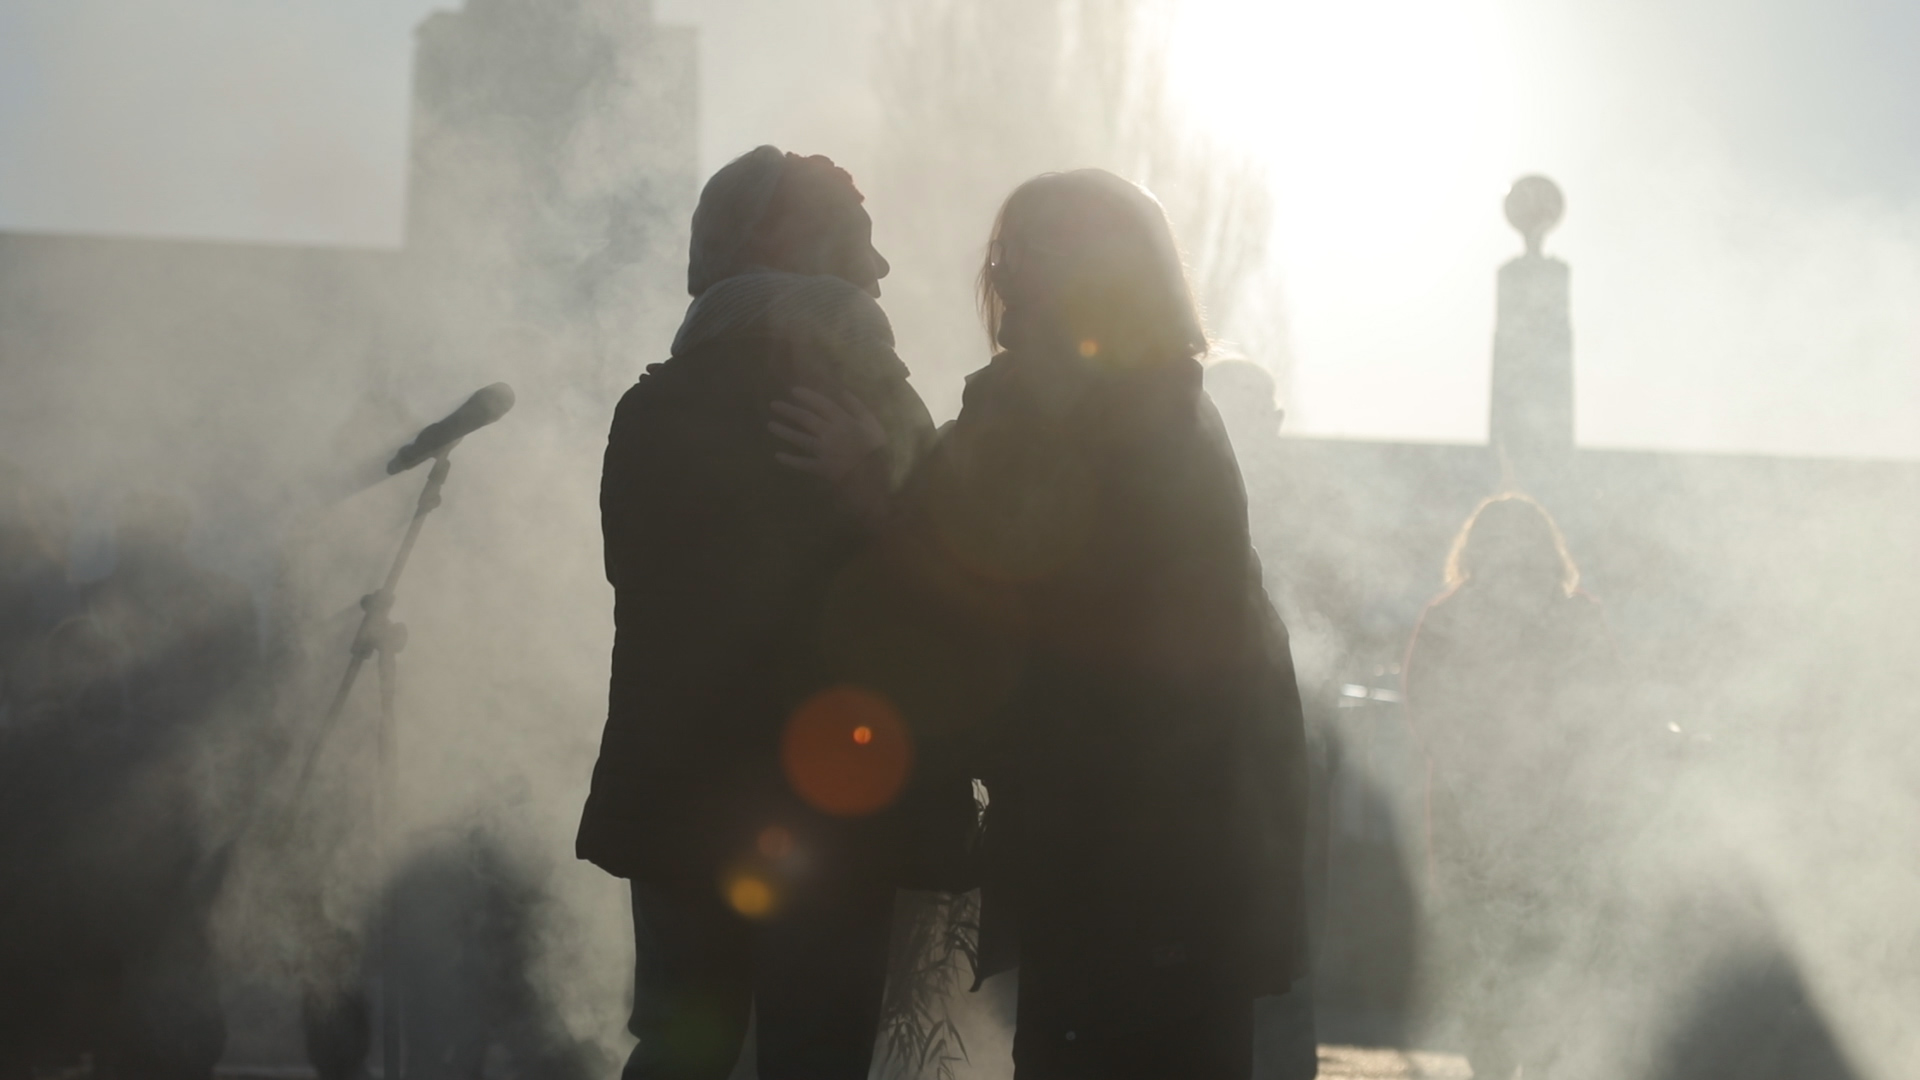 two embracing silouettes in smoke